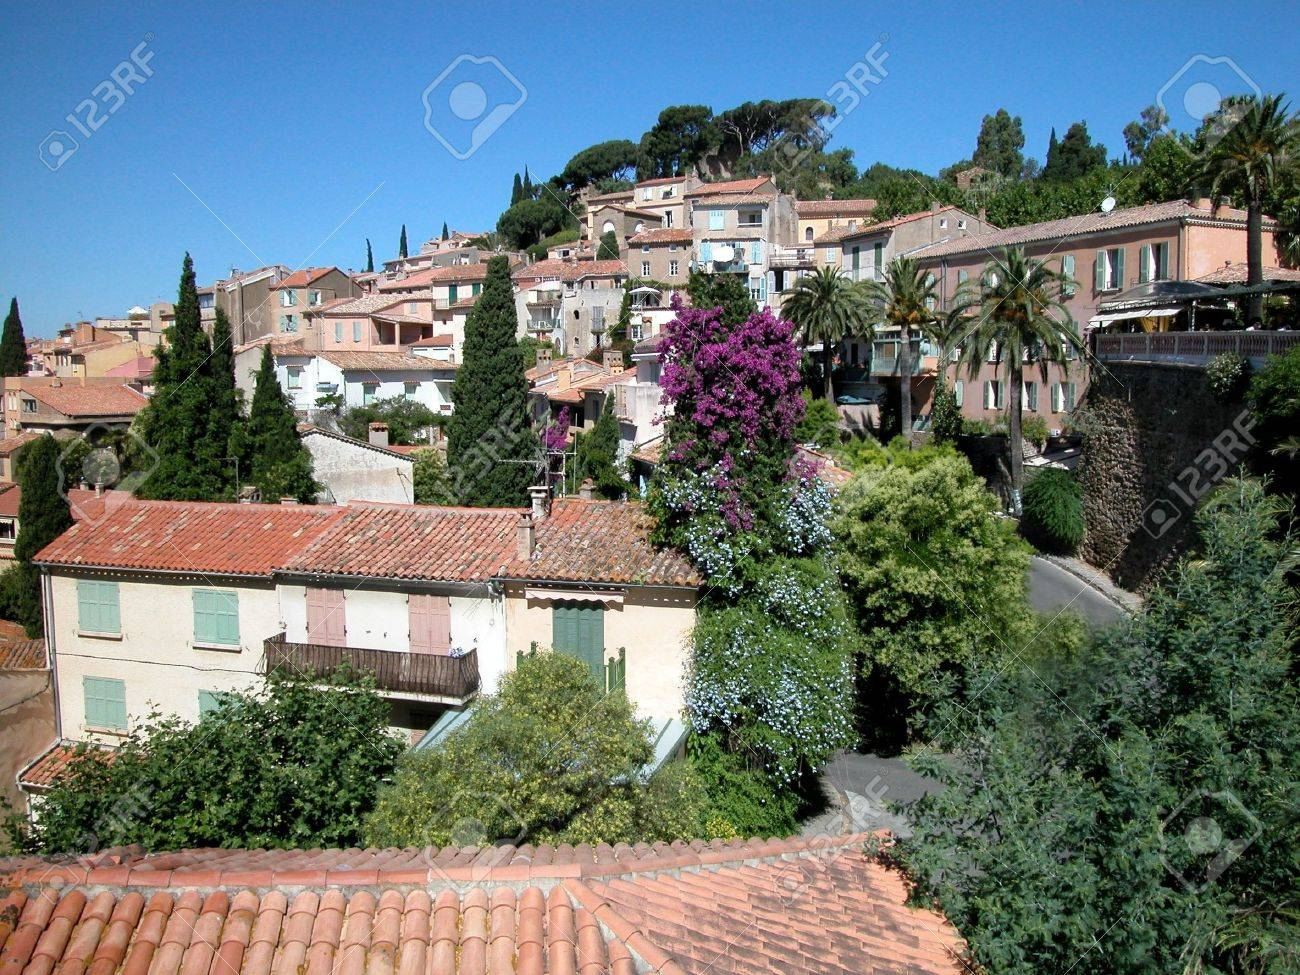 Panoramic view of houses and roofs of Bormes Les Mimosas village, France Stock Photo - 5087718